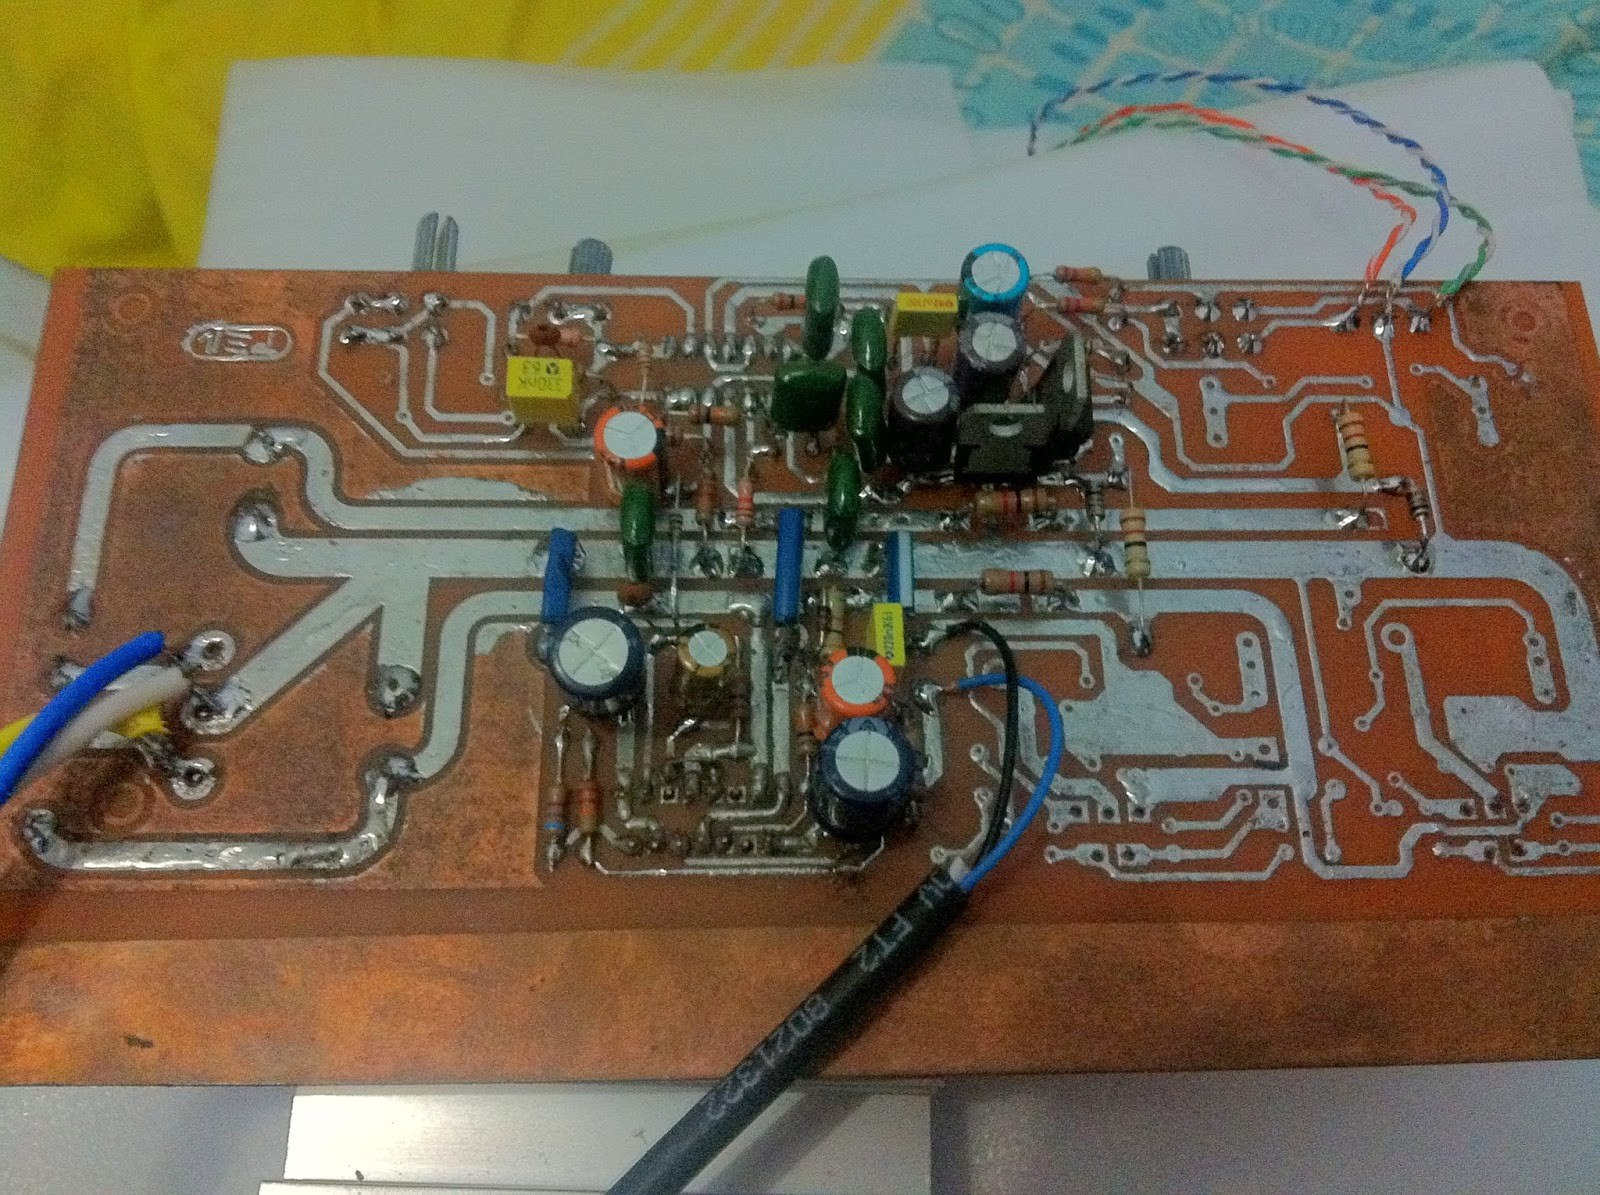 2.1 Amplifier With TDA7294 and LM1875 23